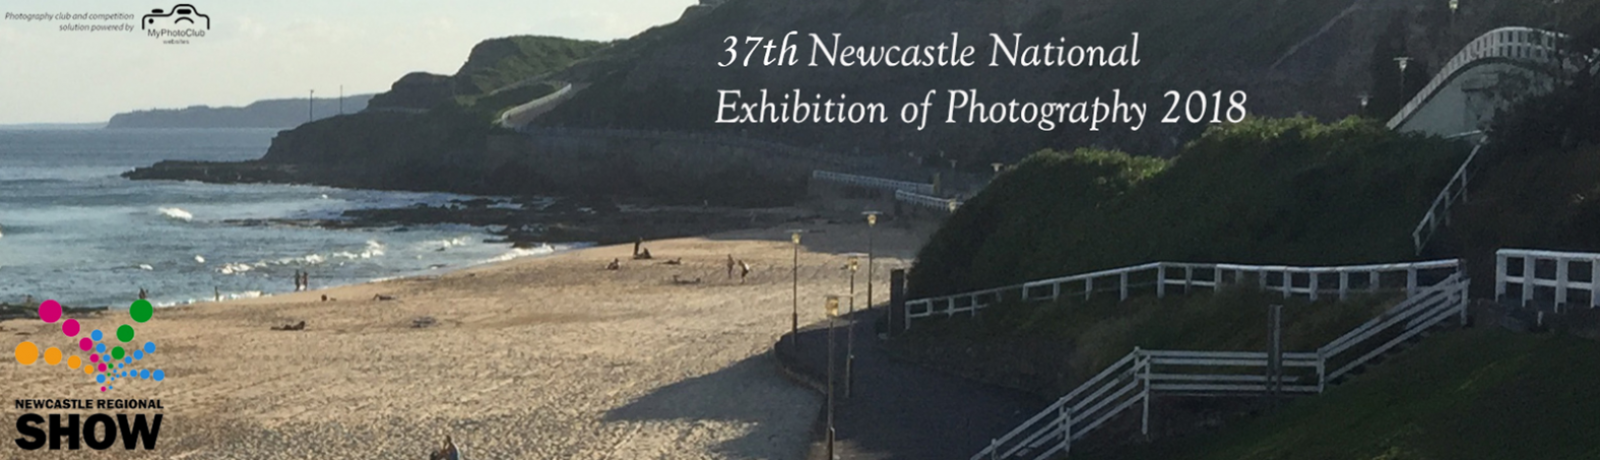 Newcastle National Exhibition of Photography